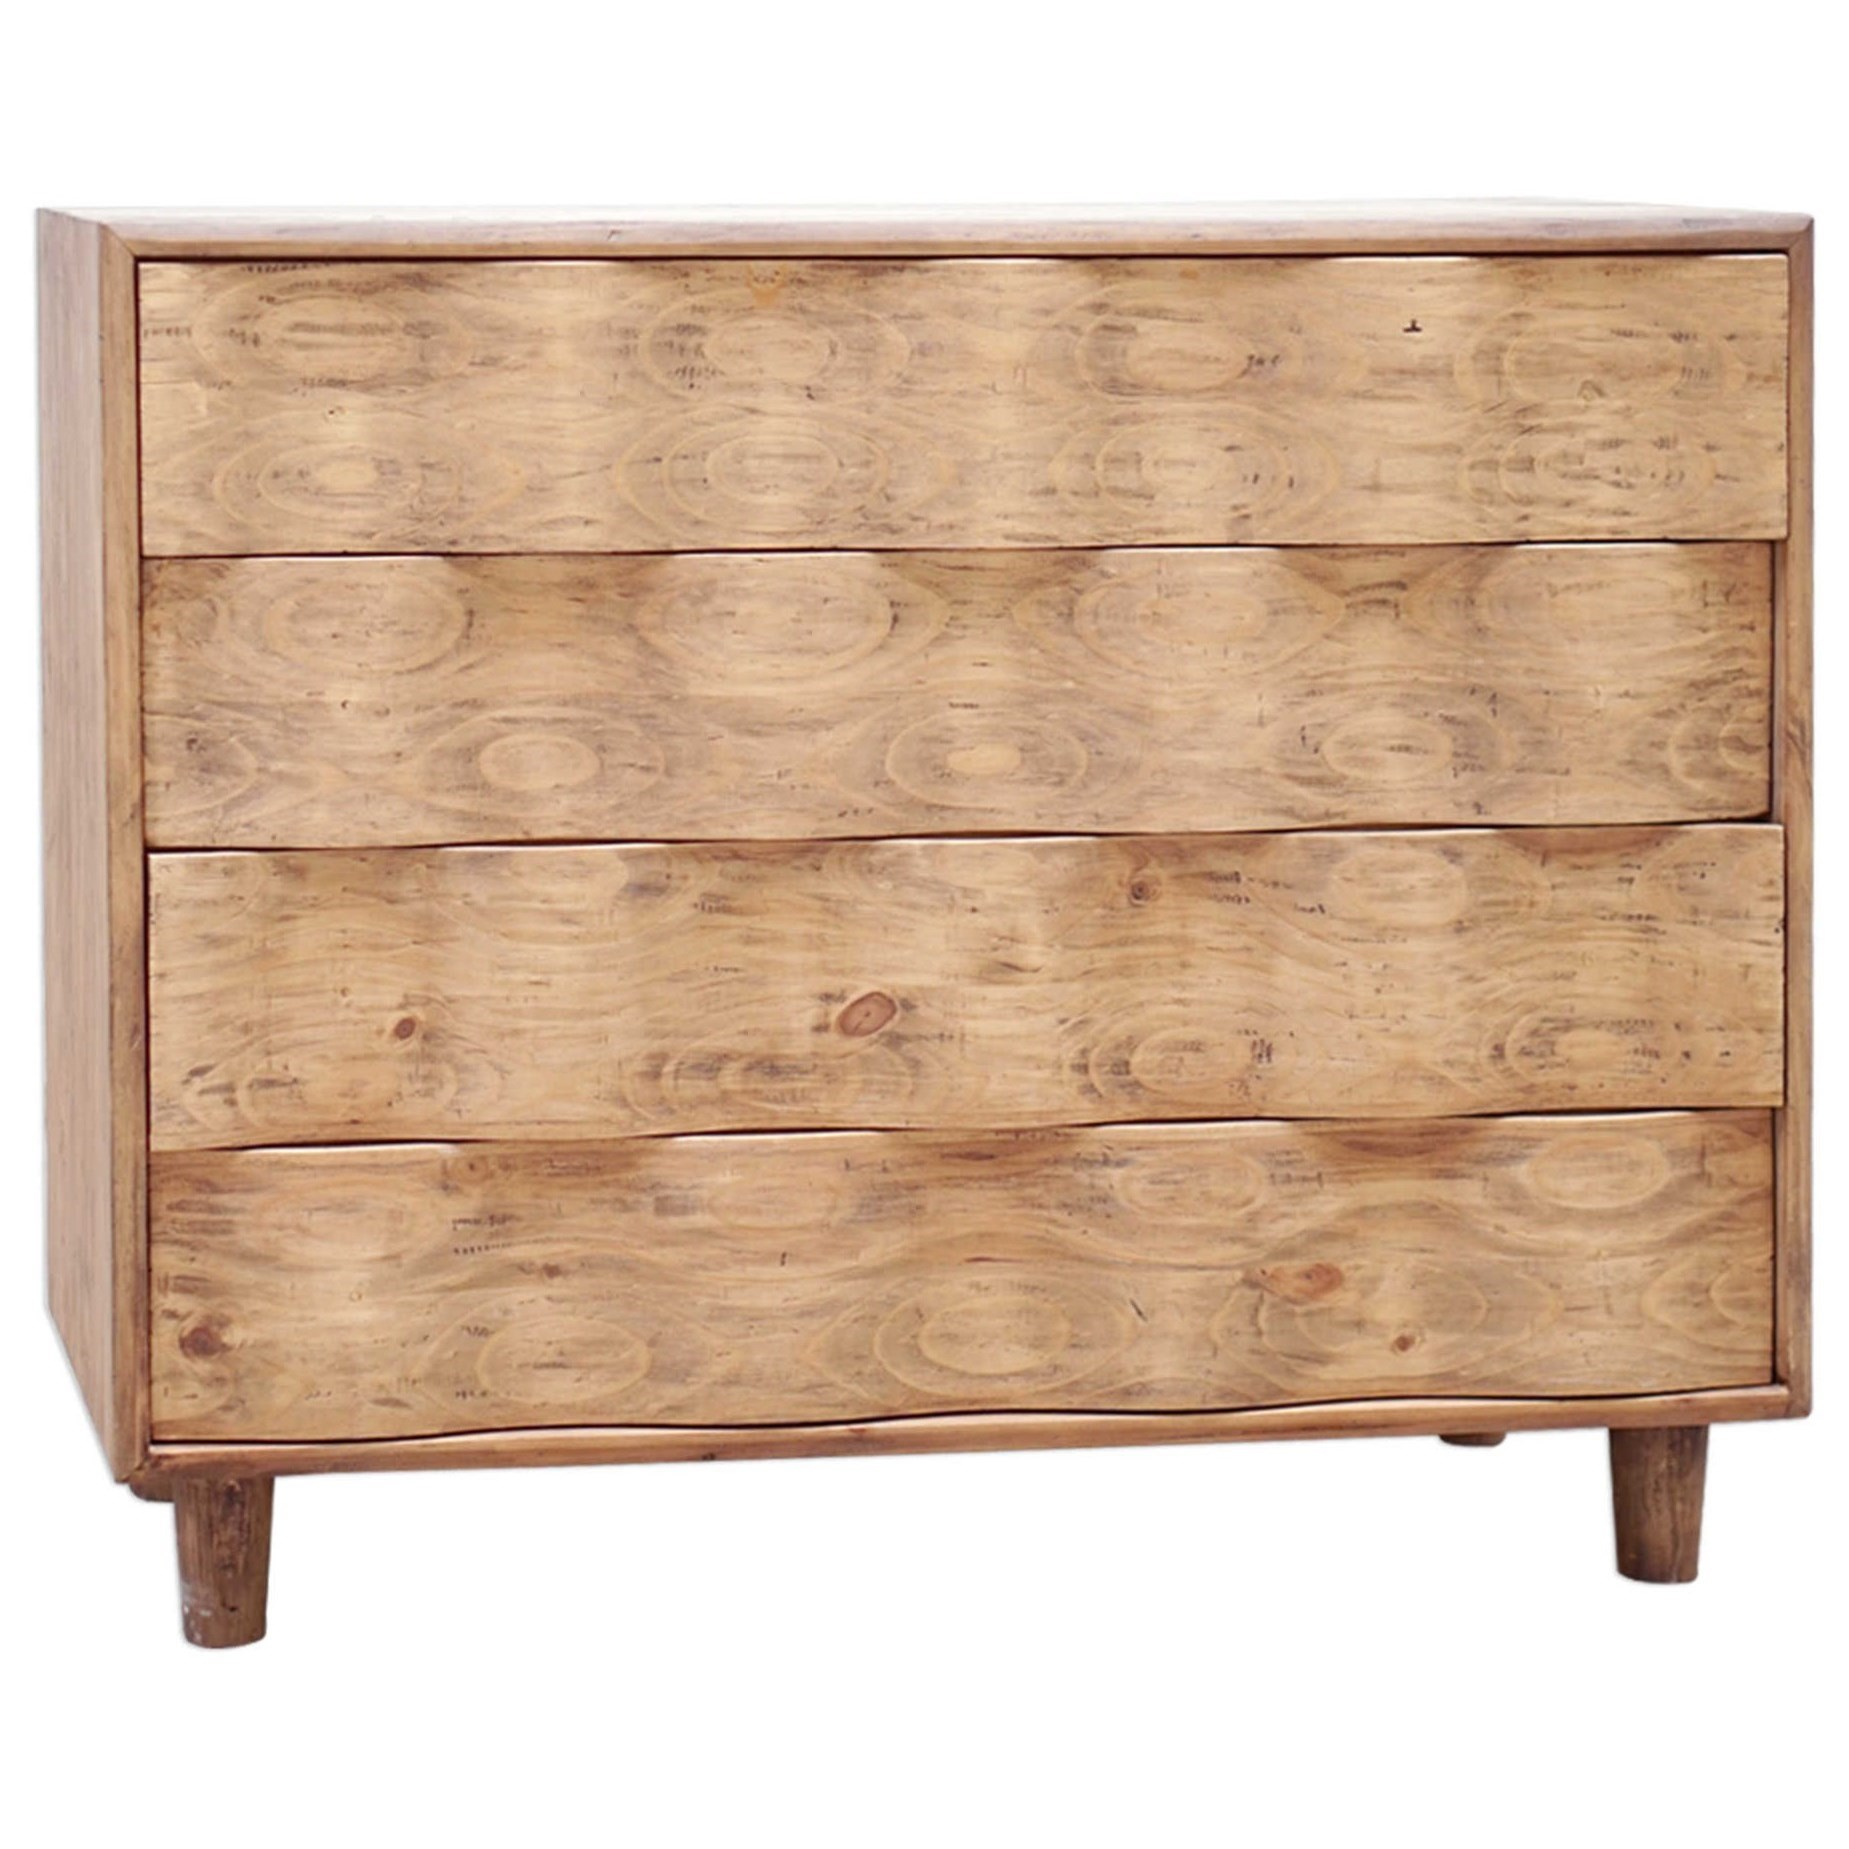 Accent Furniture - Chests Crawford Light Oak Accent Chest by Uttermost at Mueller Furniture